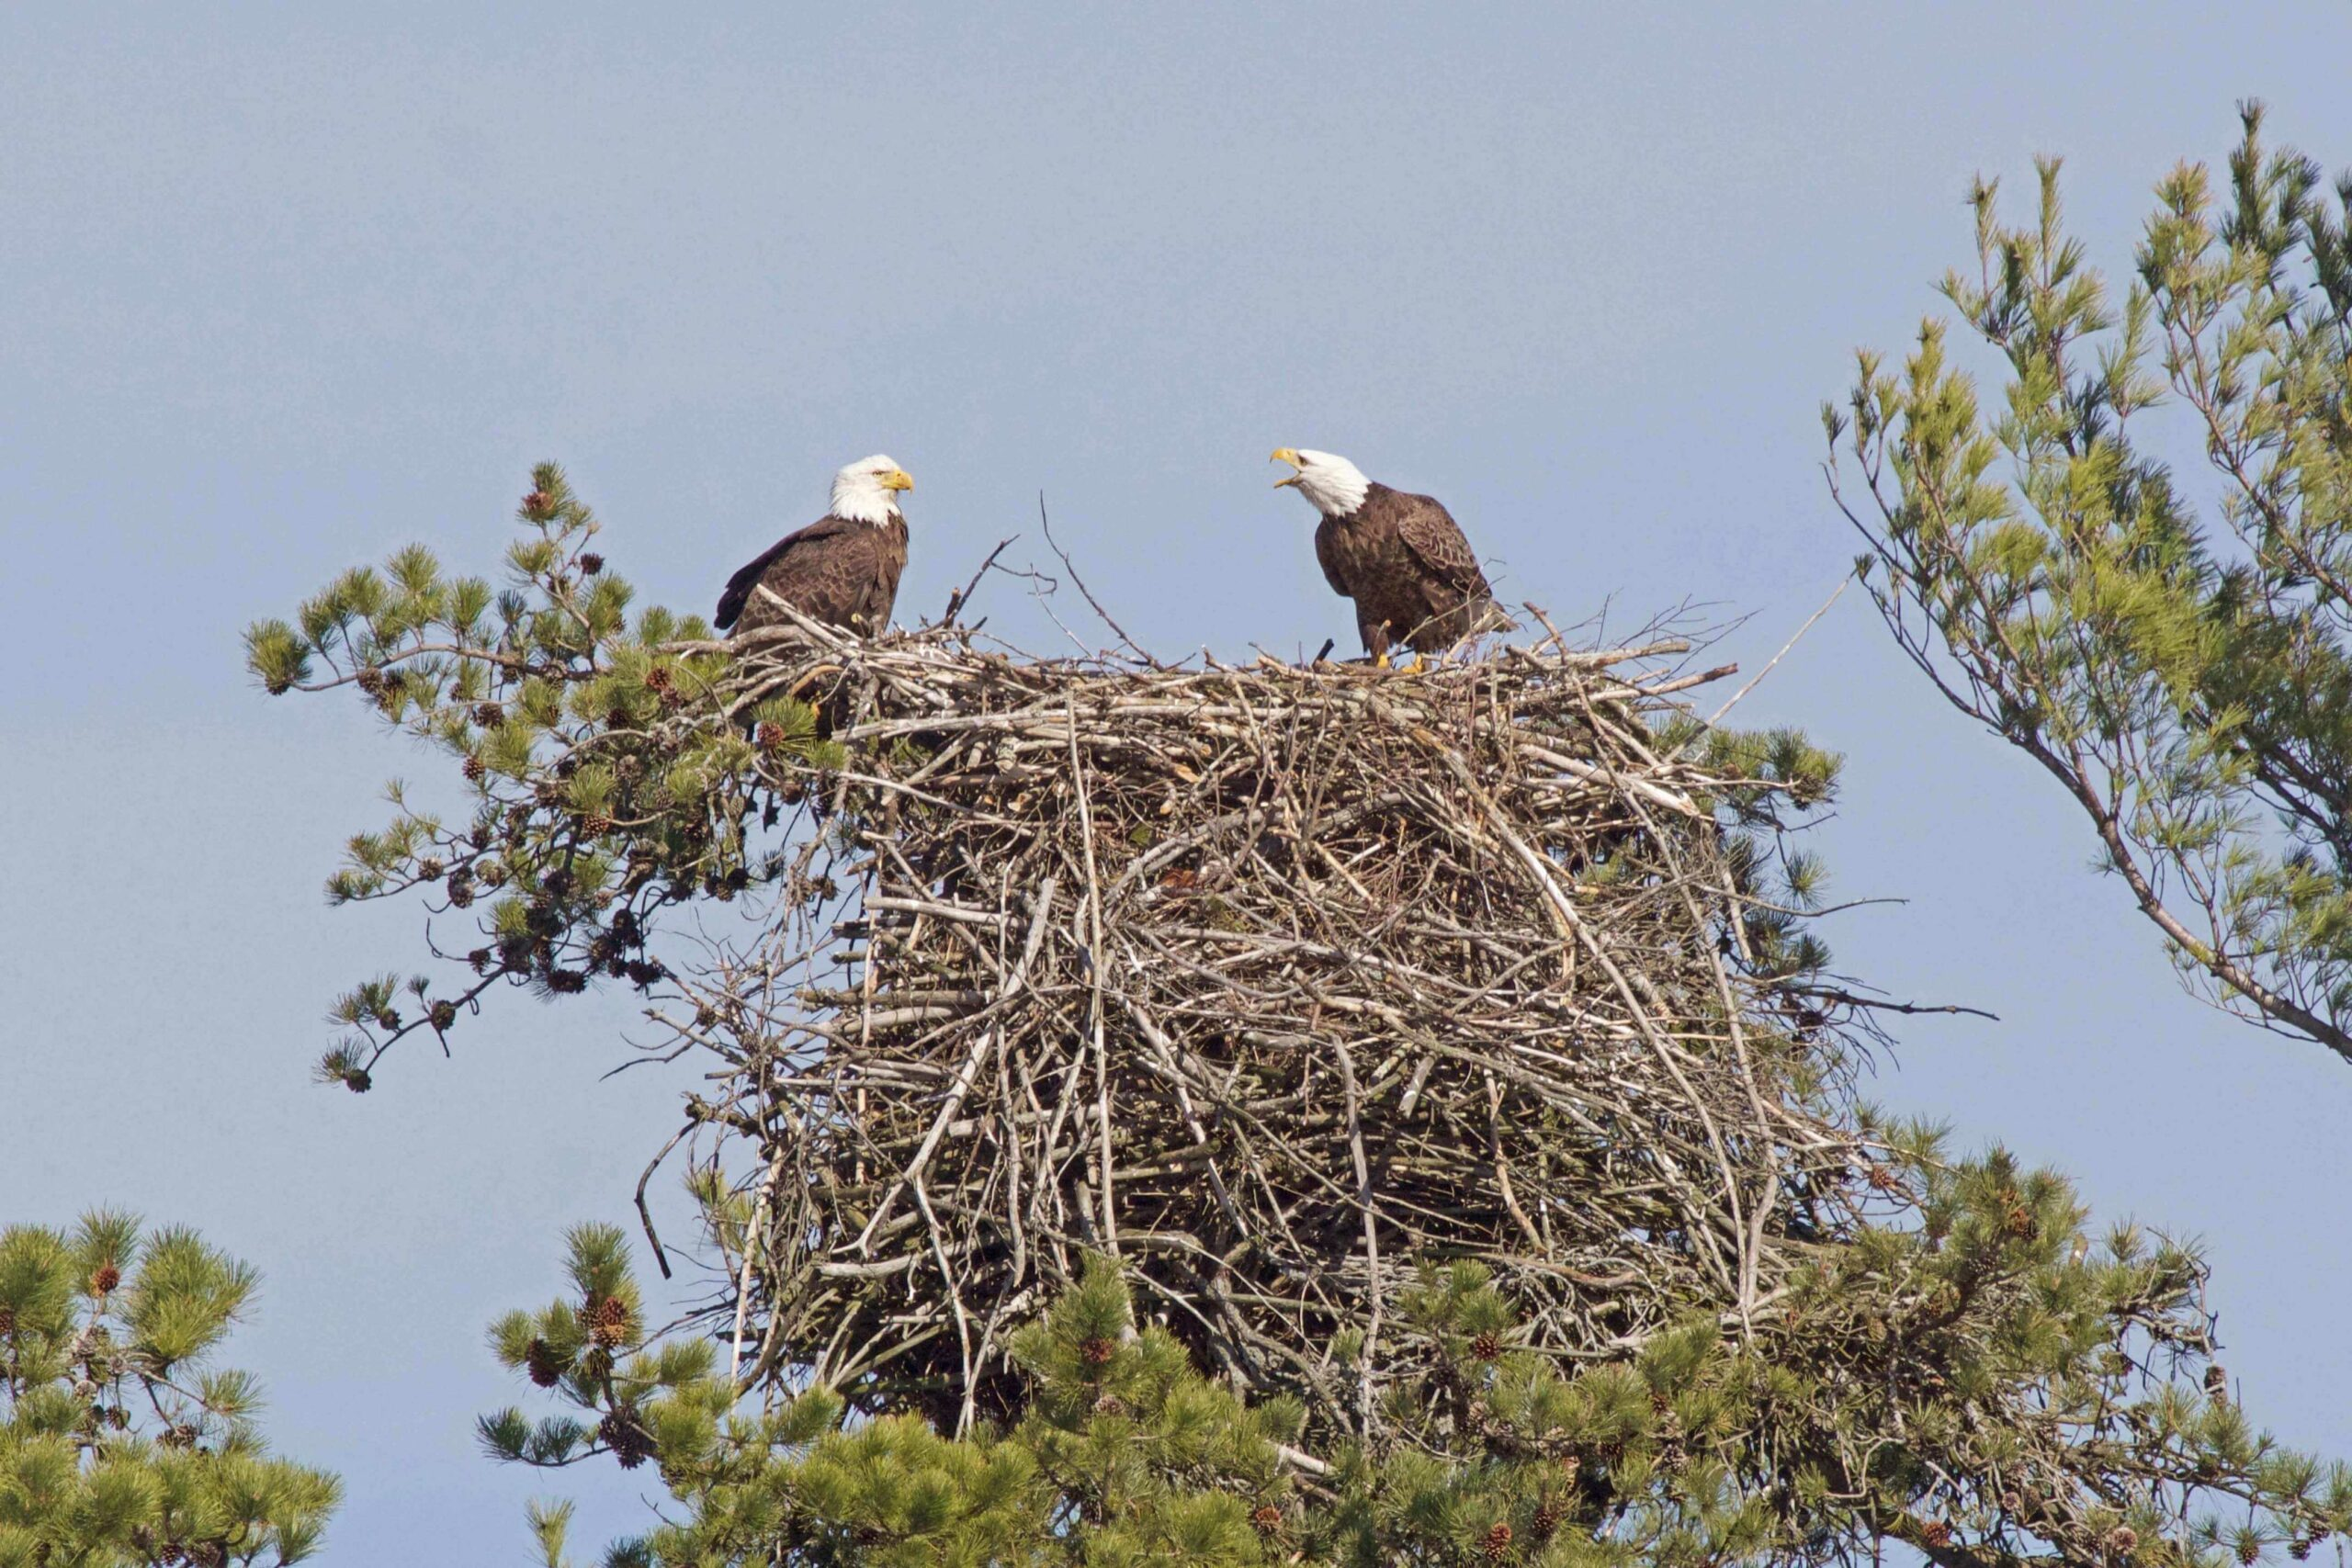 Bald eagles in a big nest